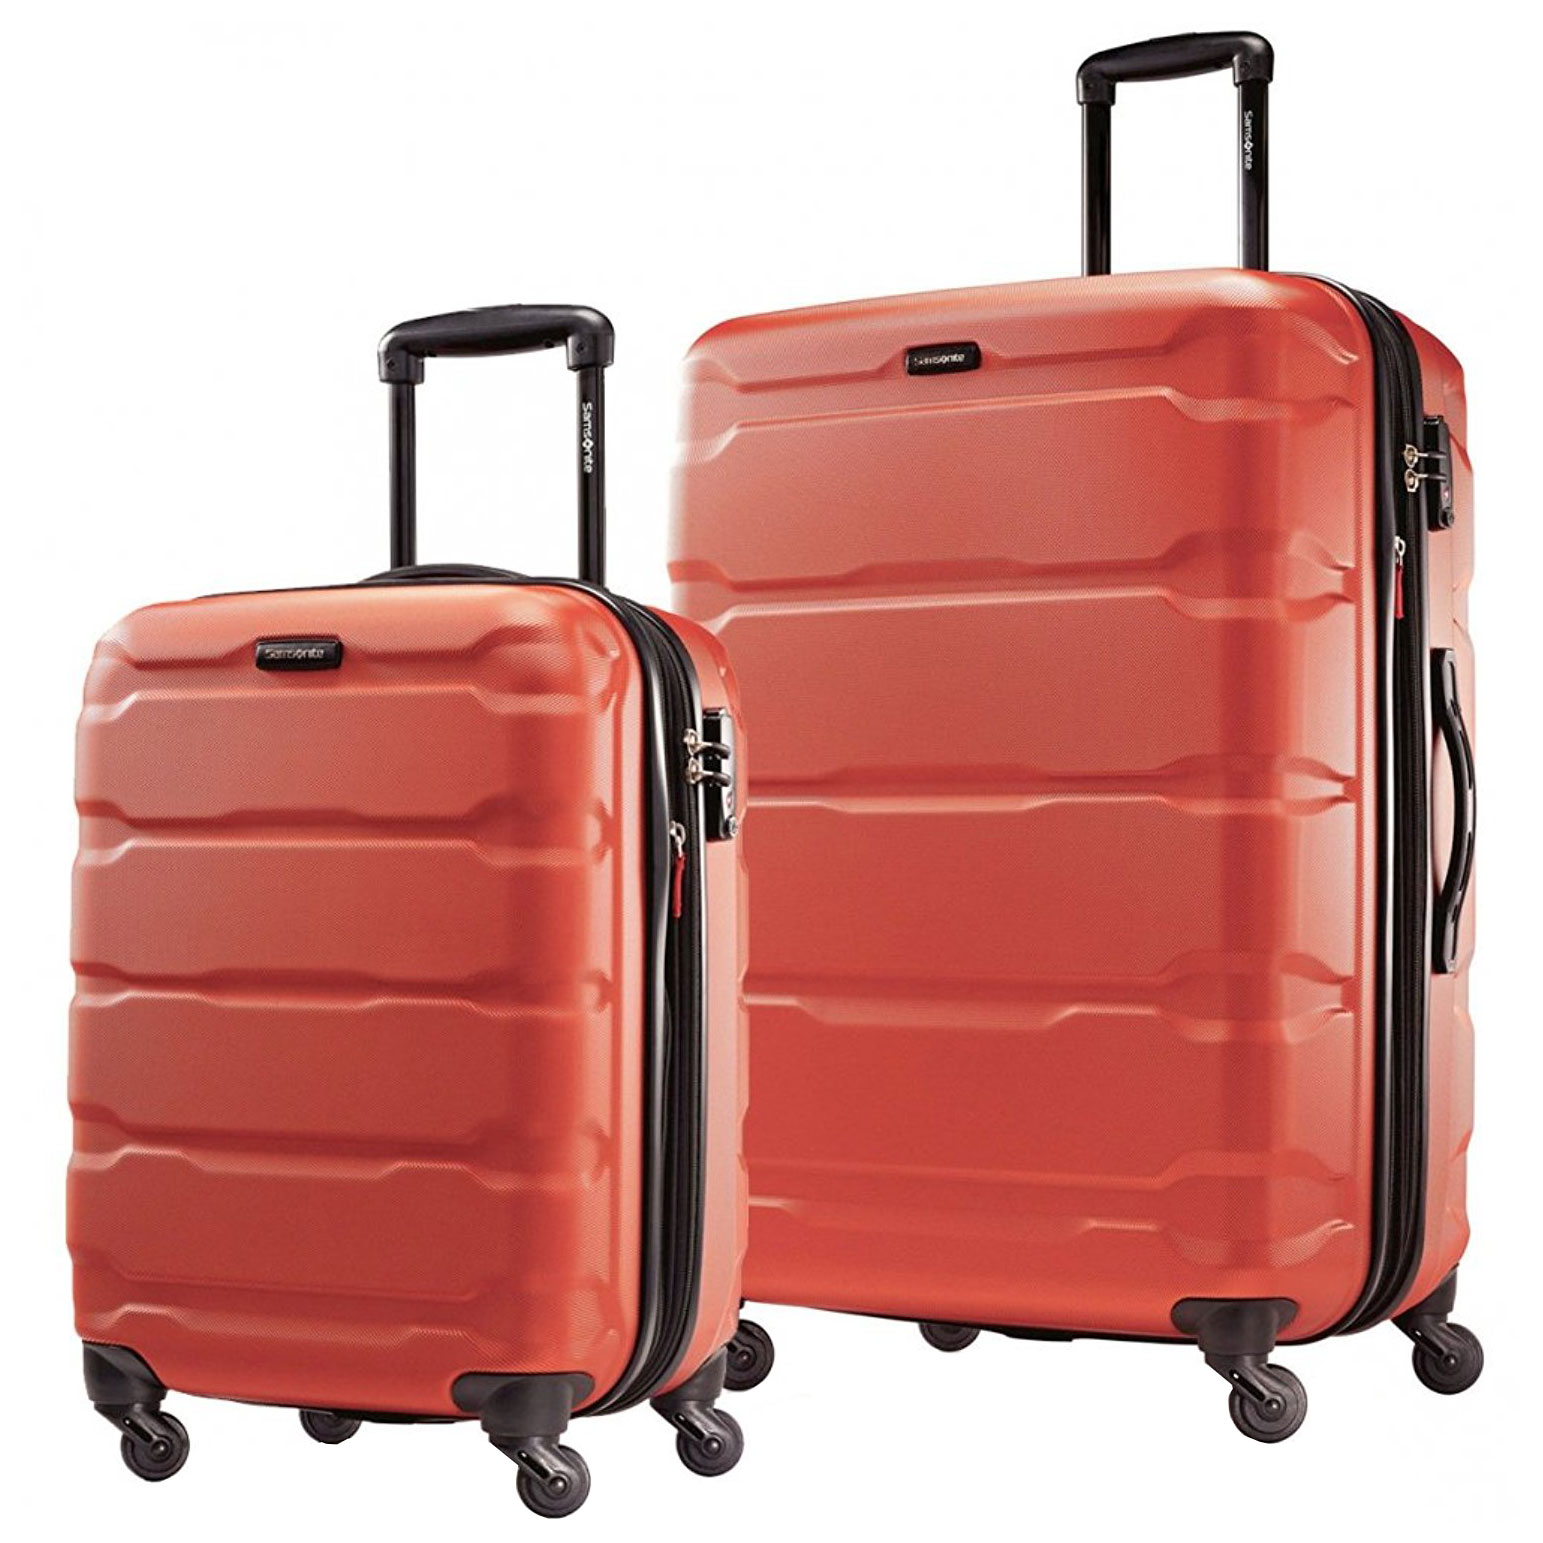 Samsonite Omni PC 2-Piece Spinner Set